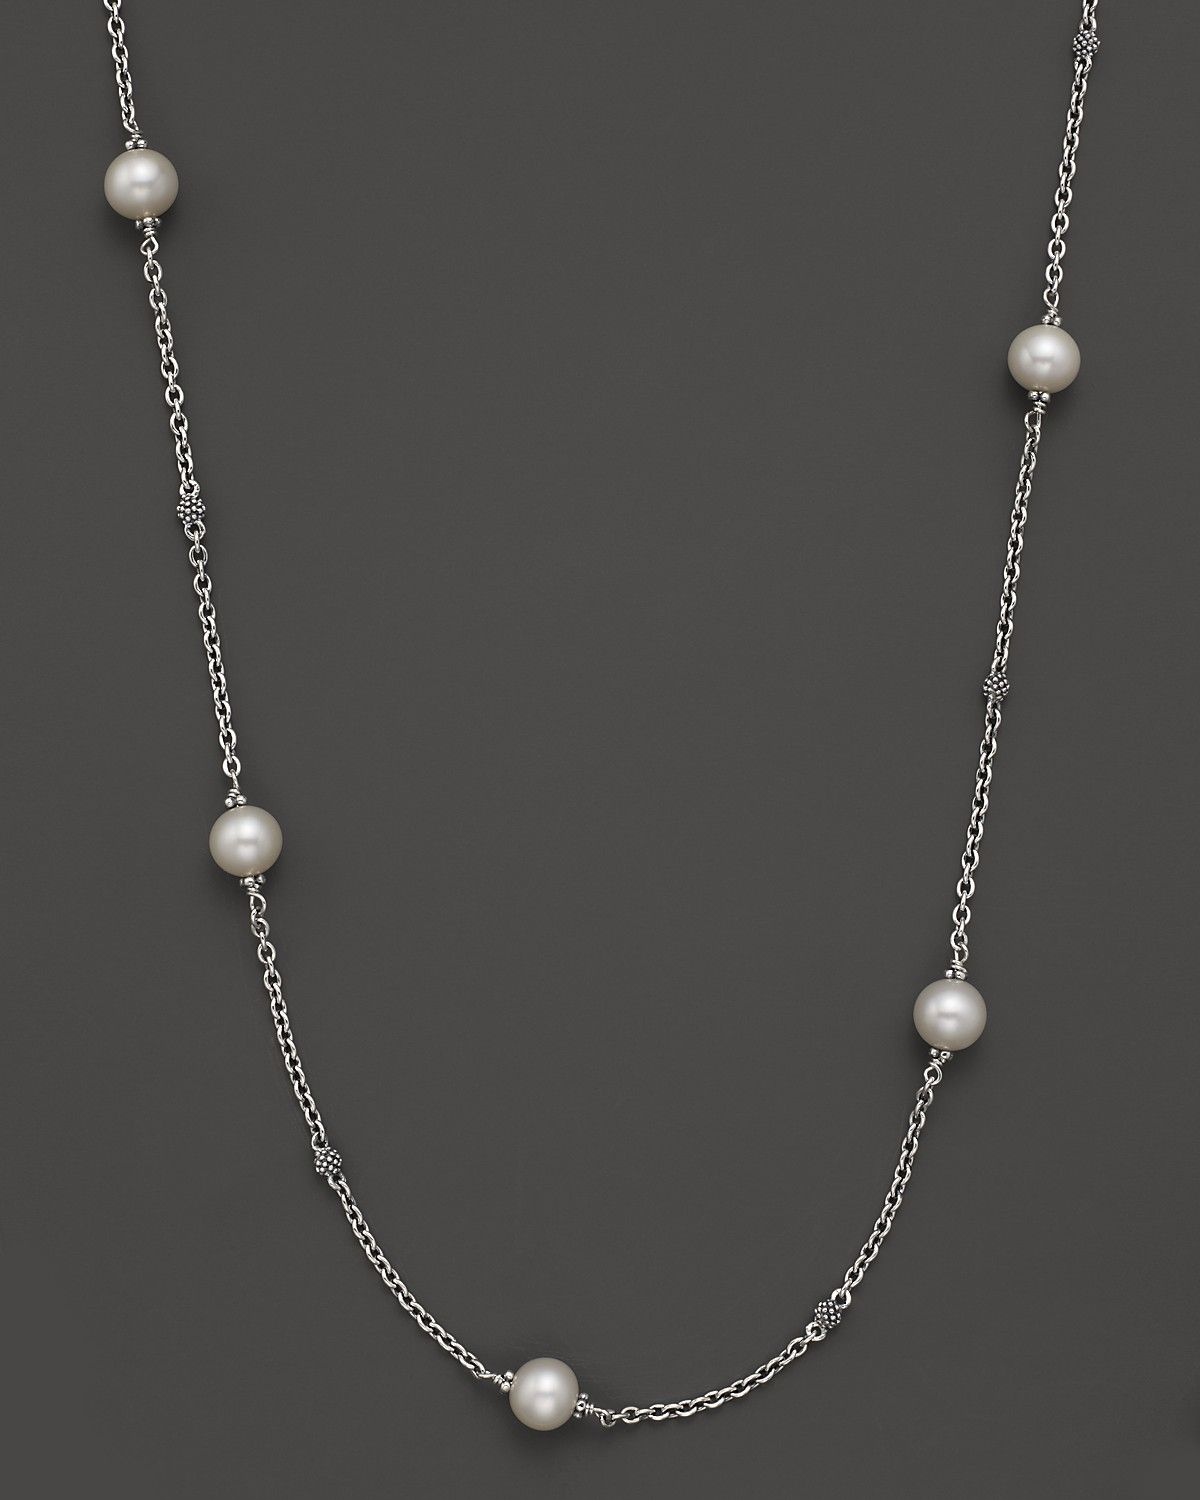 Lagos Pearl Necklace, 18L